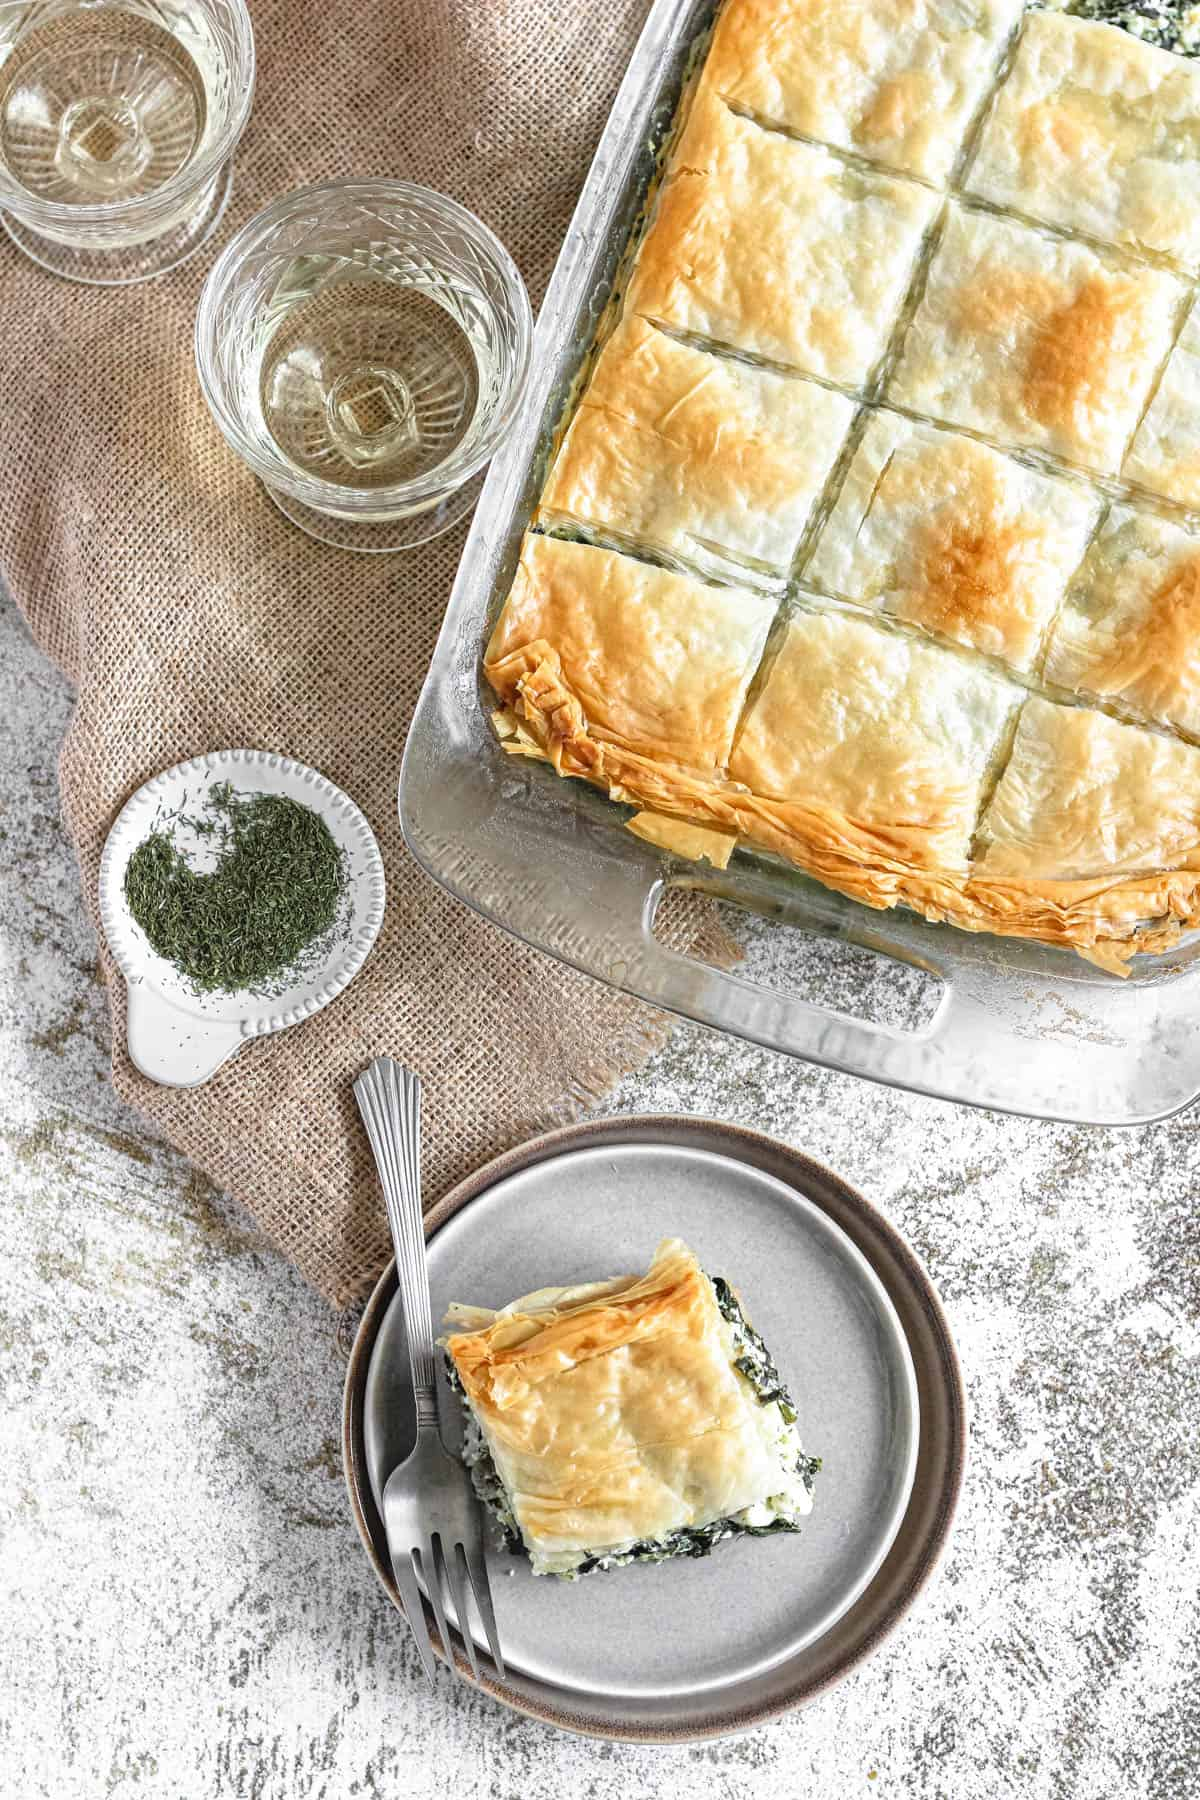 Spinach pie on a plate with a fork and a tray of spanakopita behind it